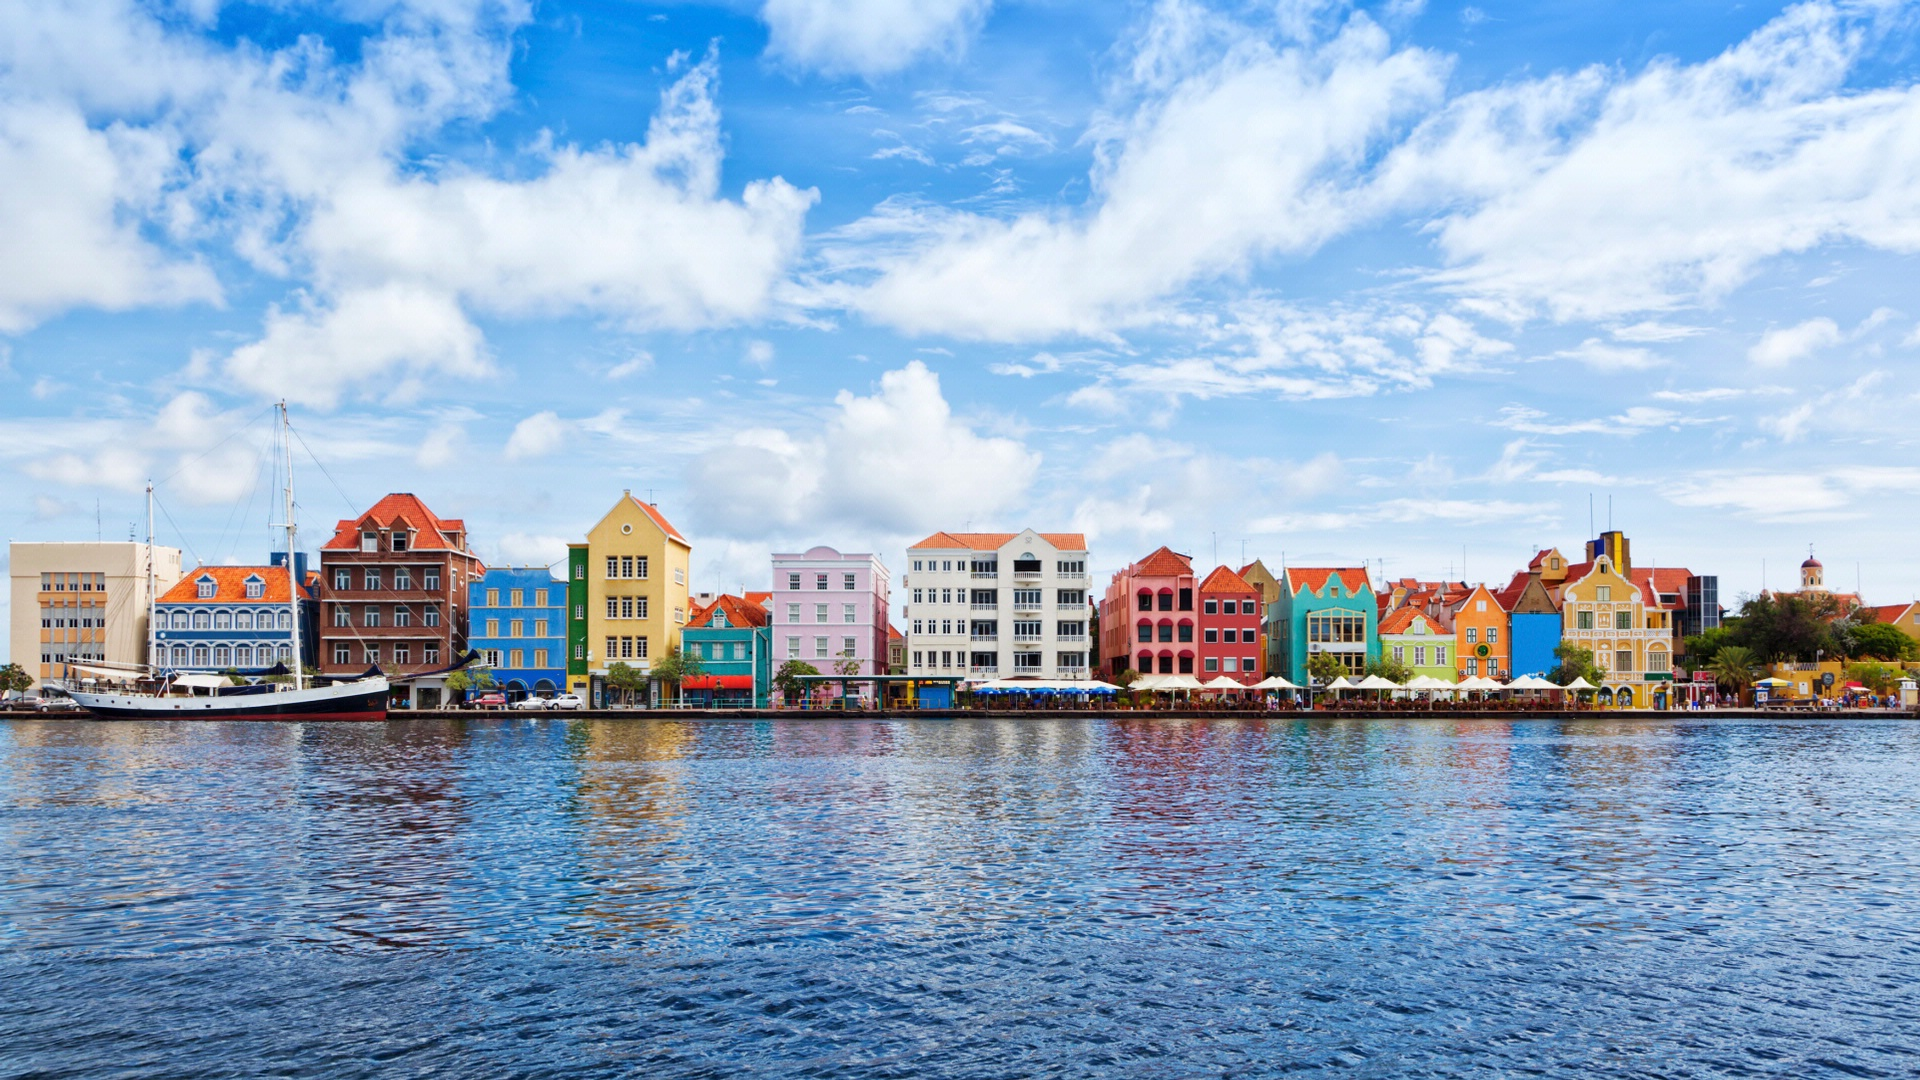 Row of colorful buildings in Willemstad